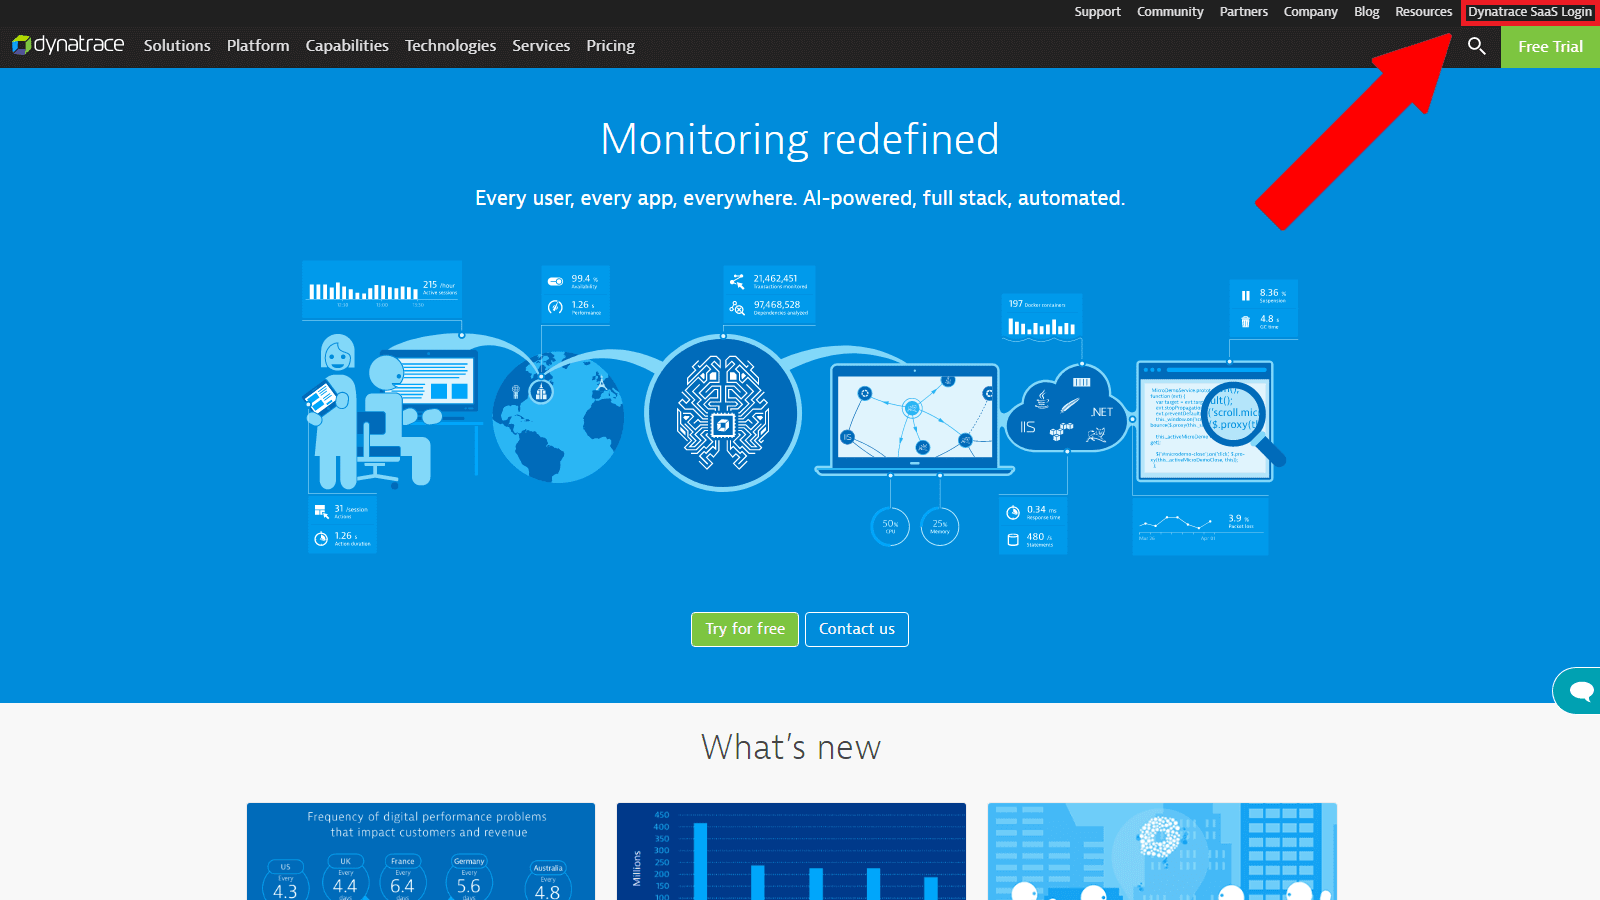 Start monitoring the full stack of your Pivotal Cloud Foundry environment by logging in to Dynatrace using the link in the top right of every page